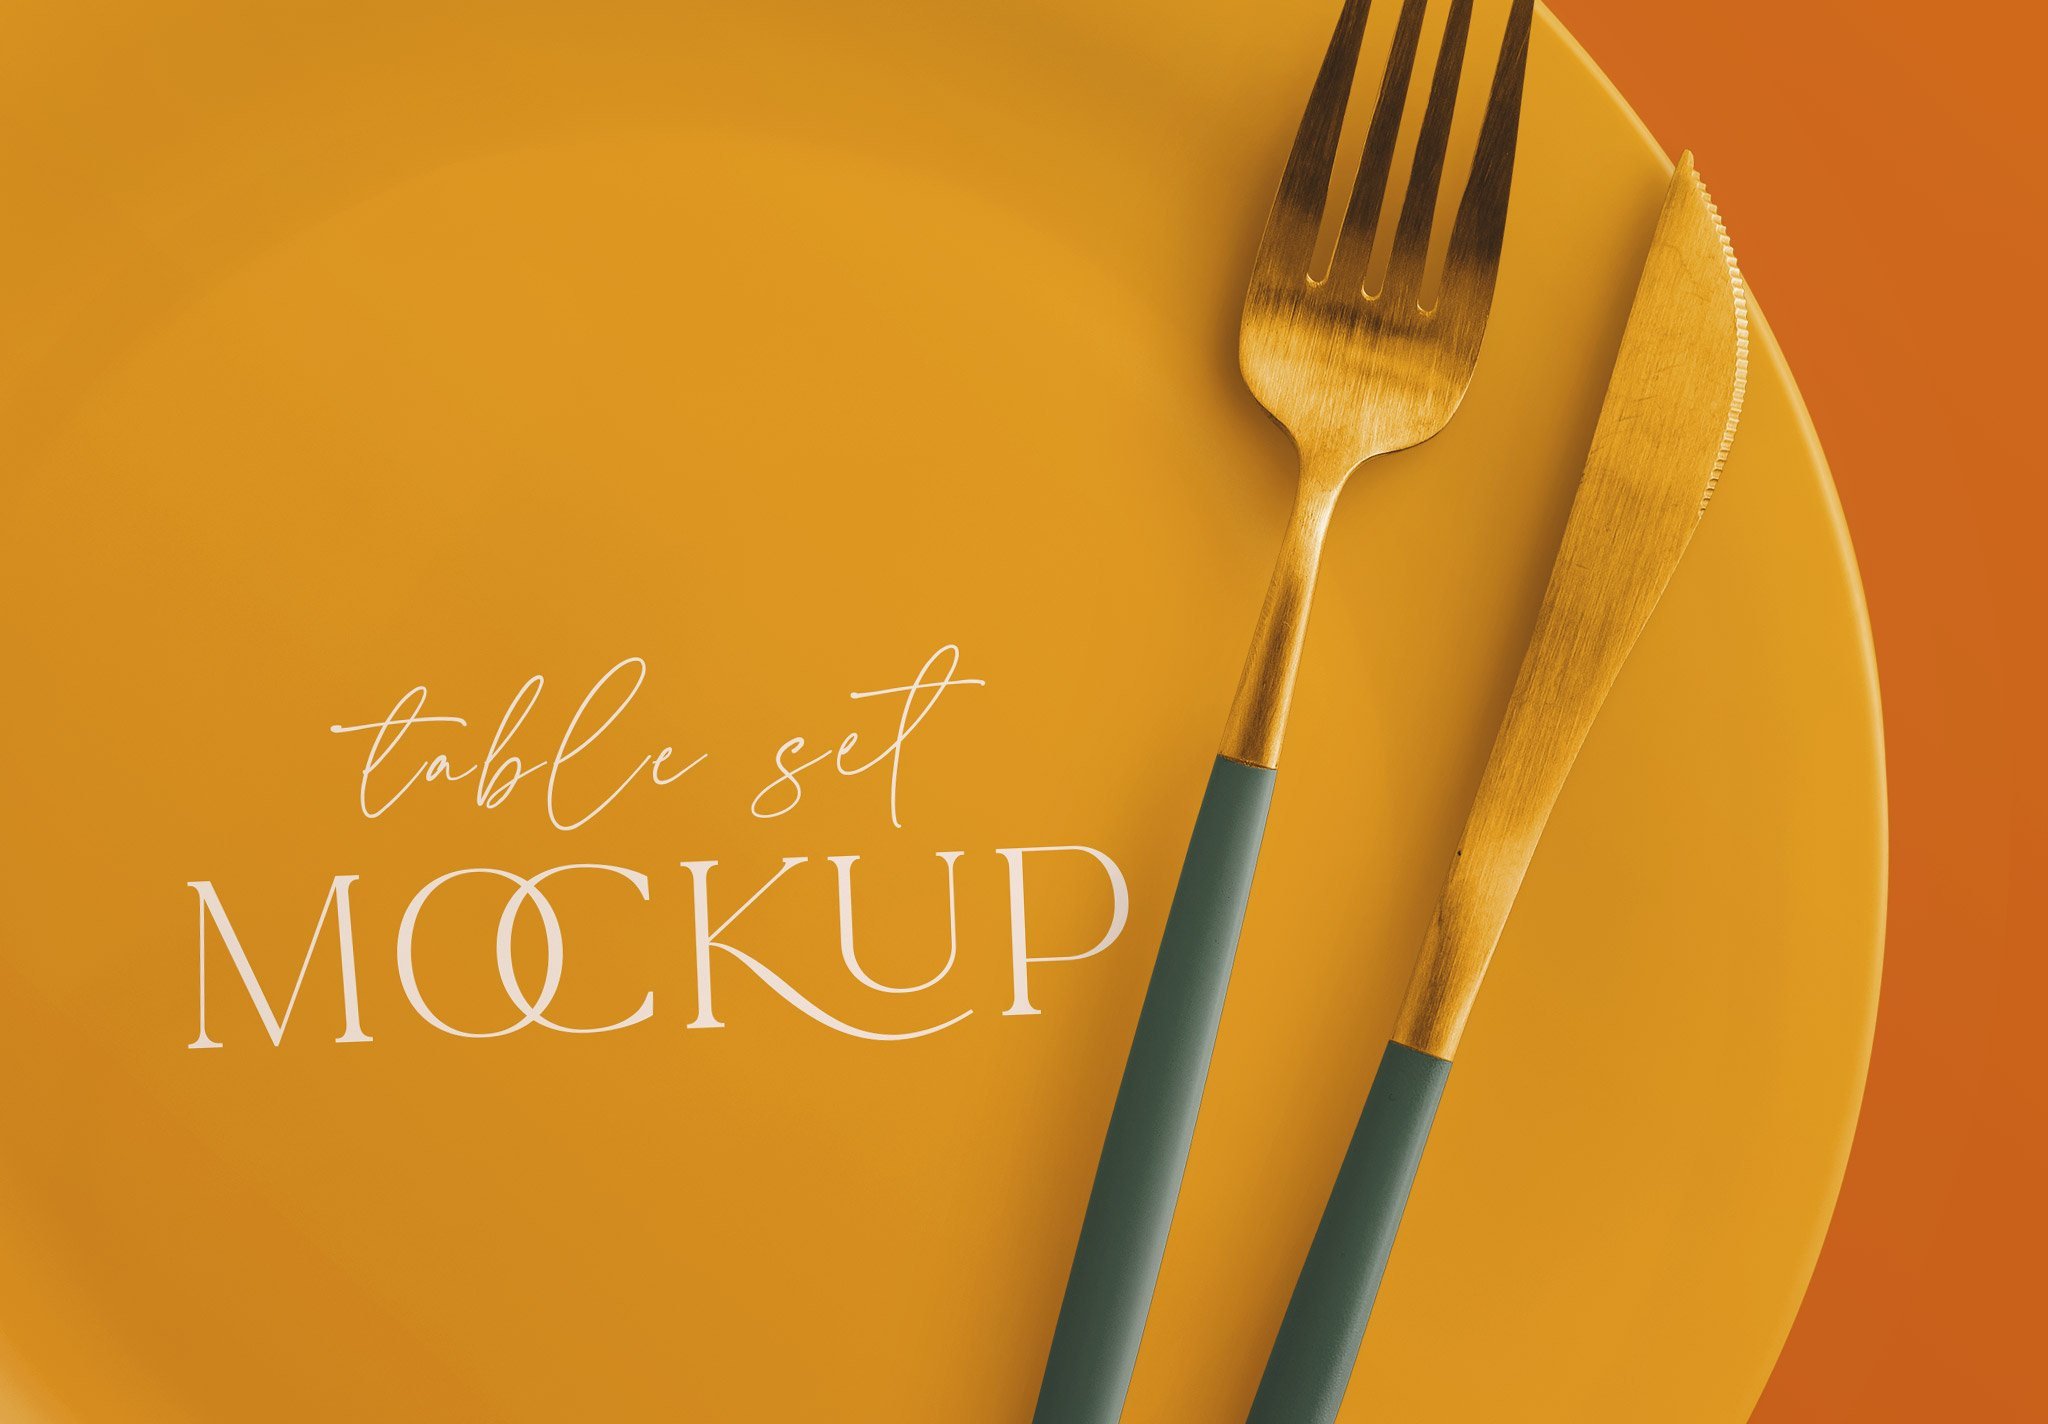 table set mockup plate and cutlery image04